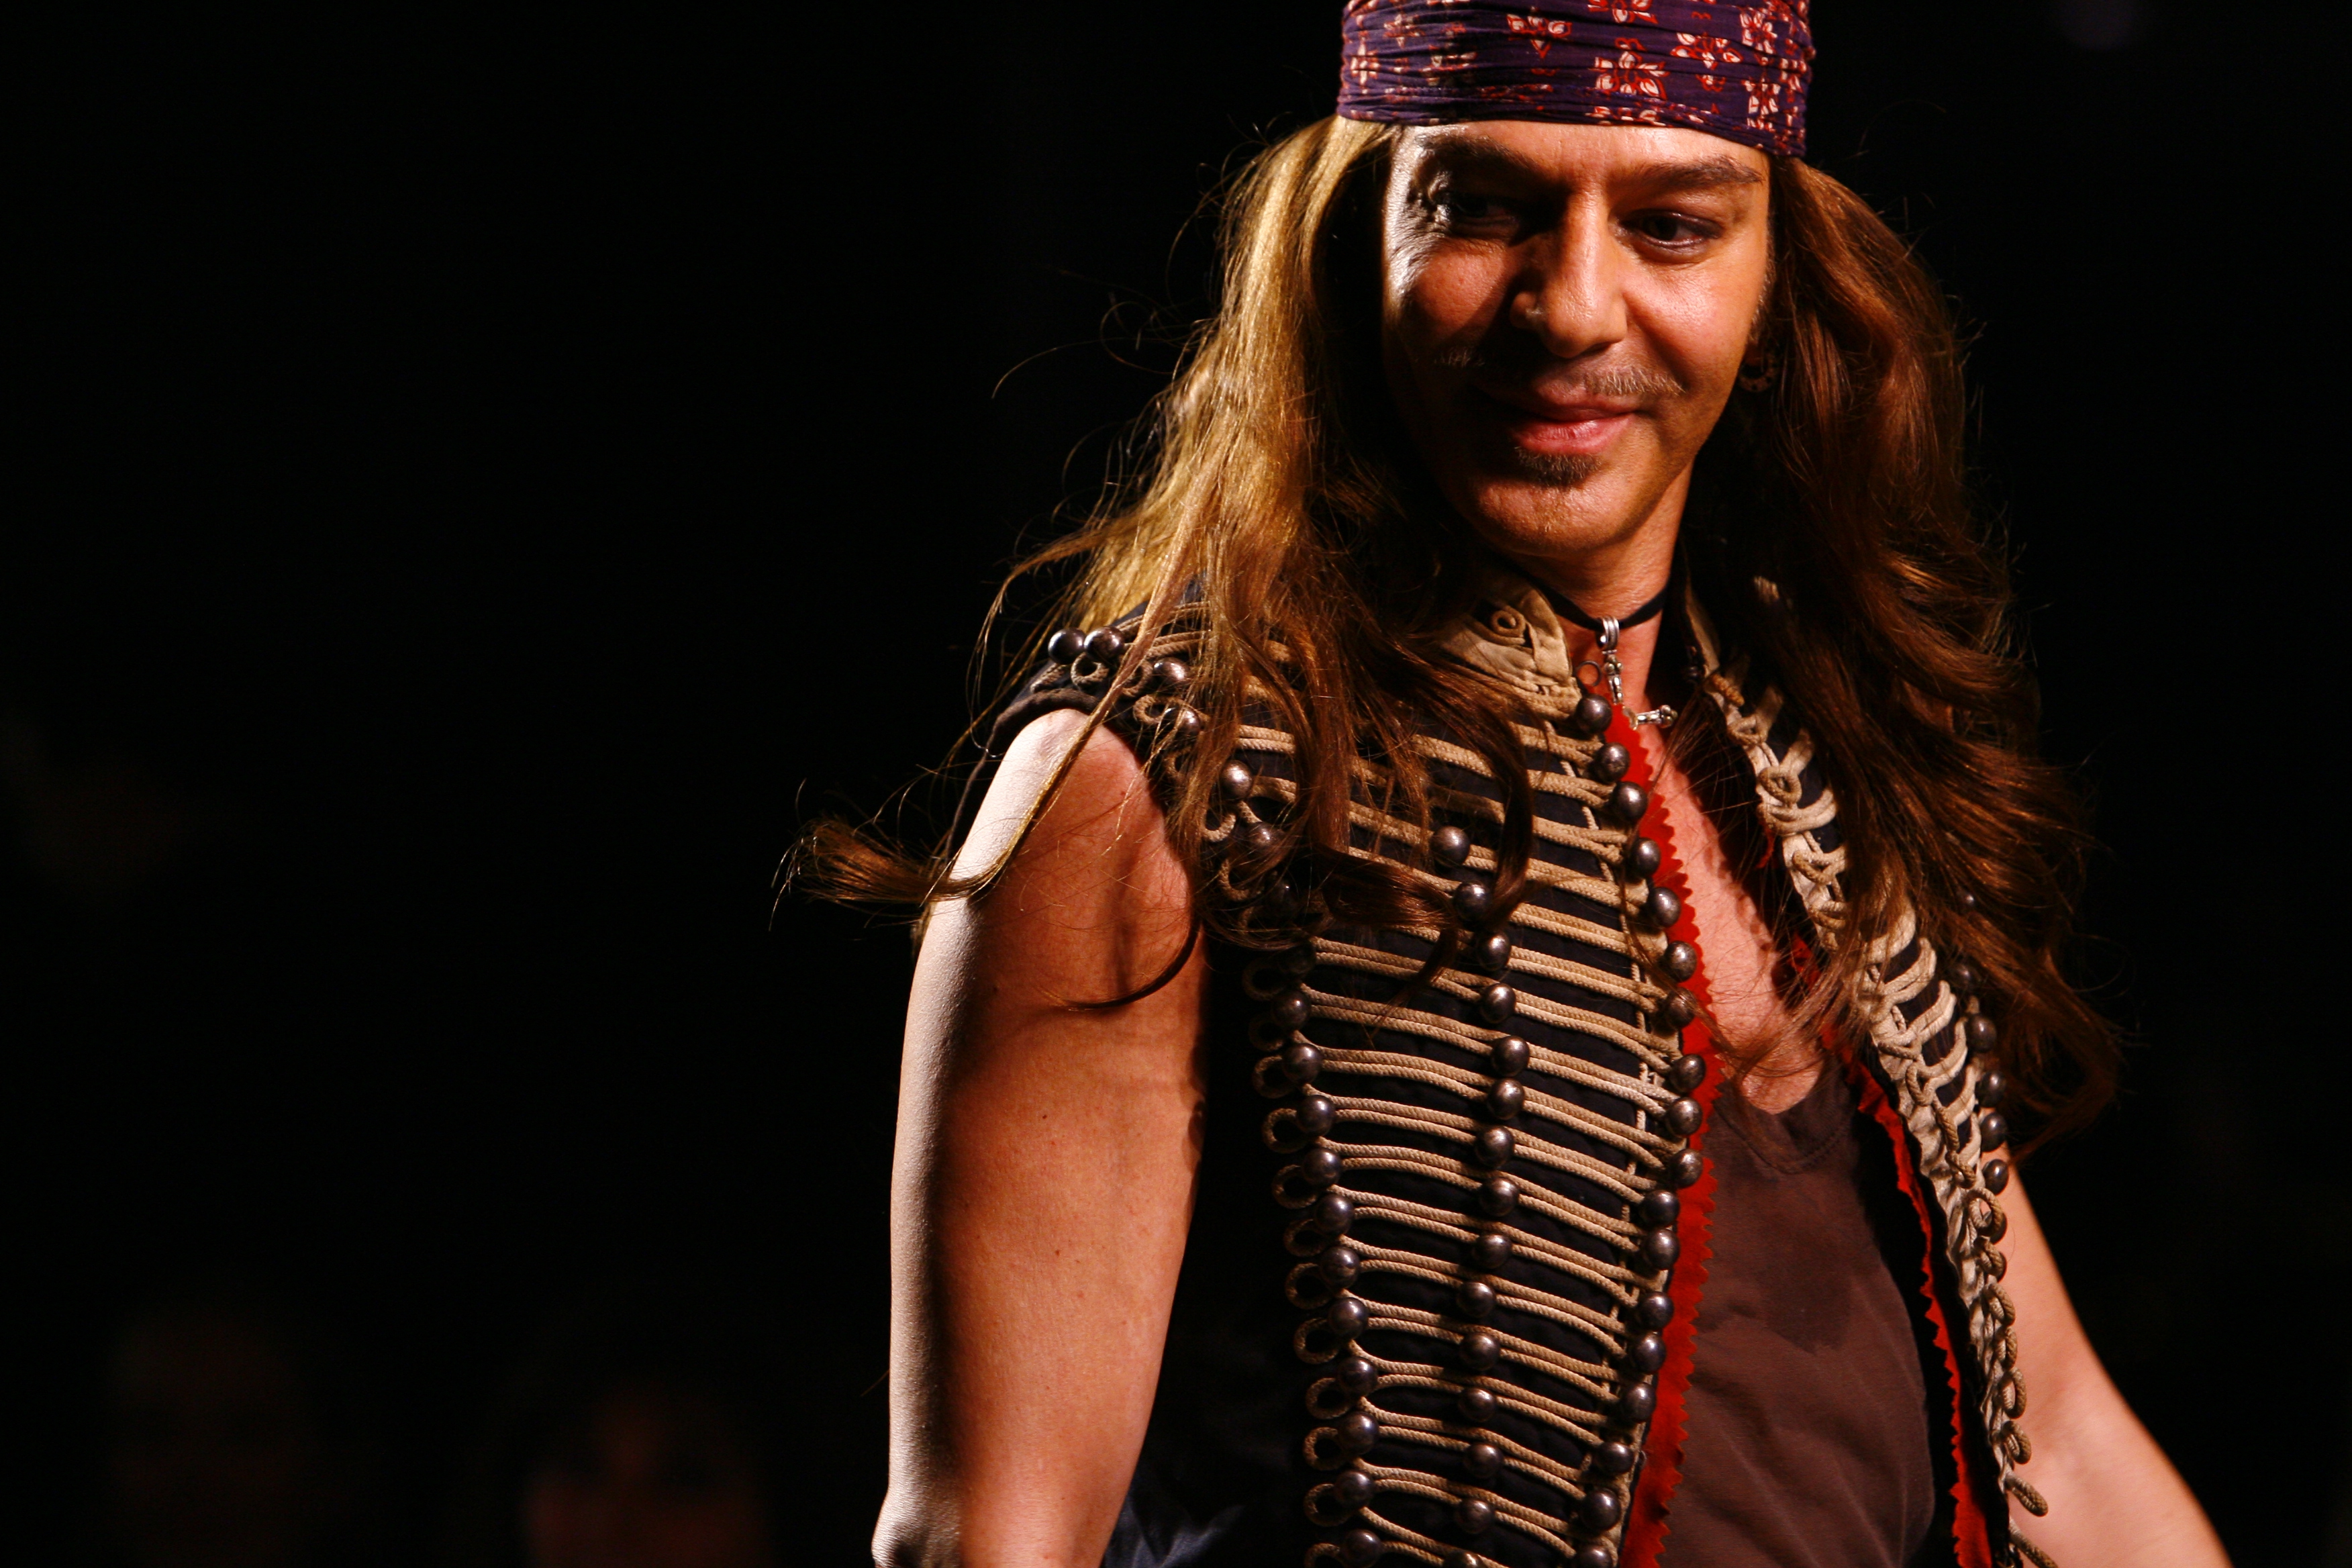 Pictures Of John Galliano